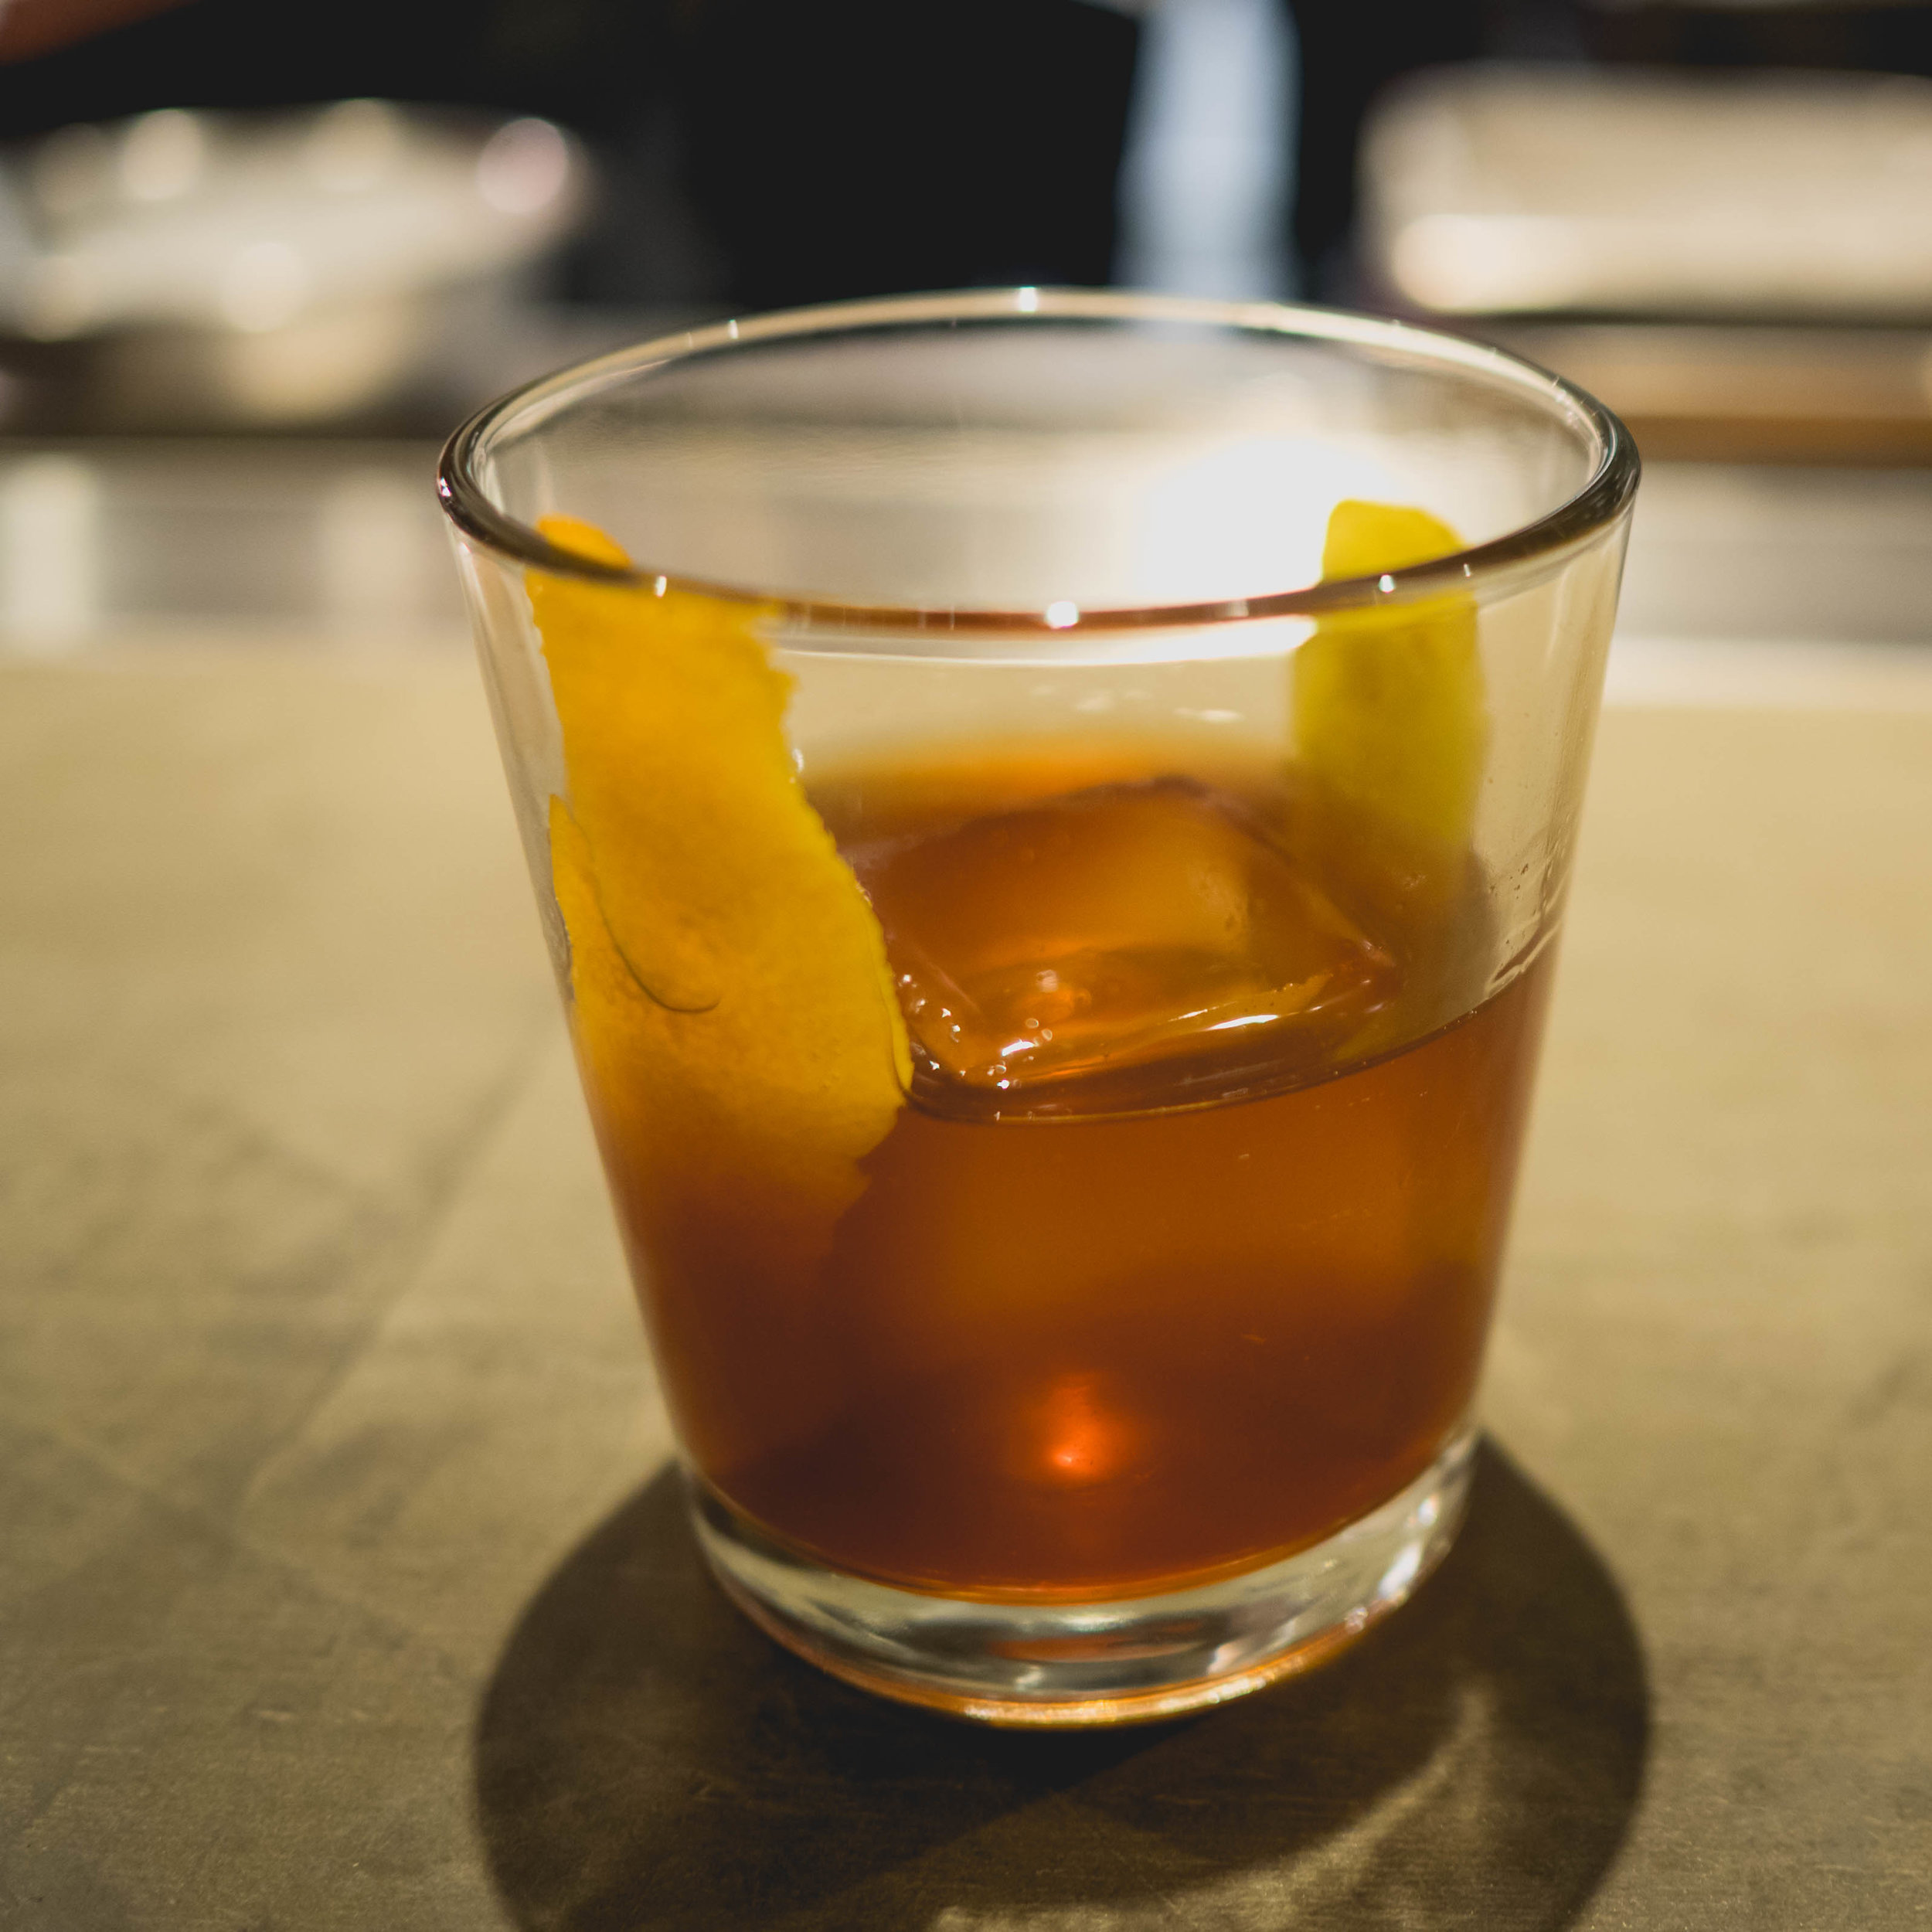 bonji old fashioned:  bourbon, black sugar, bitters.